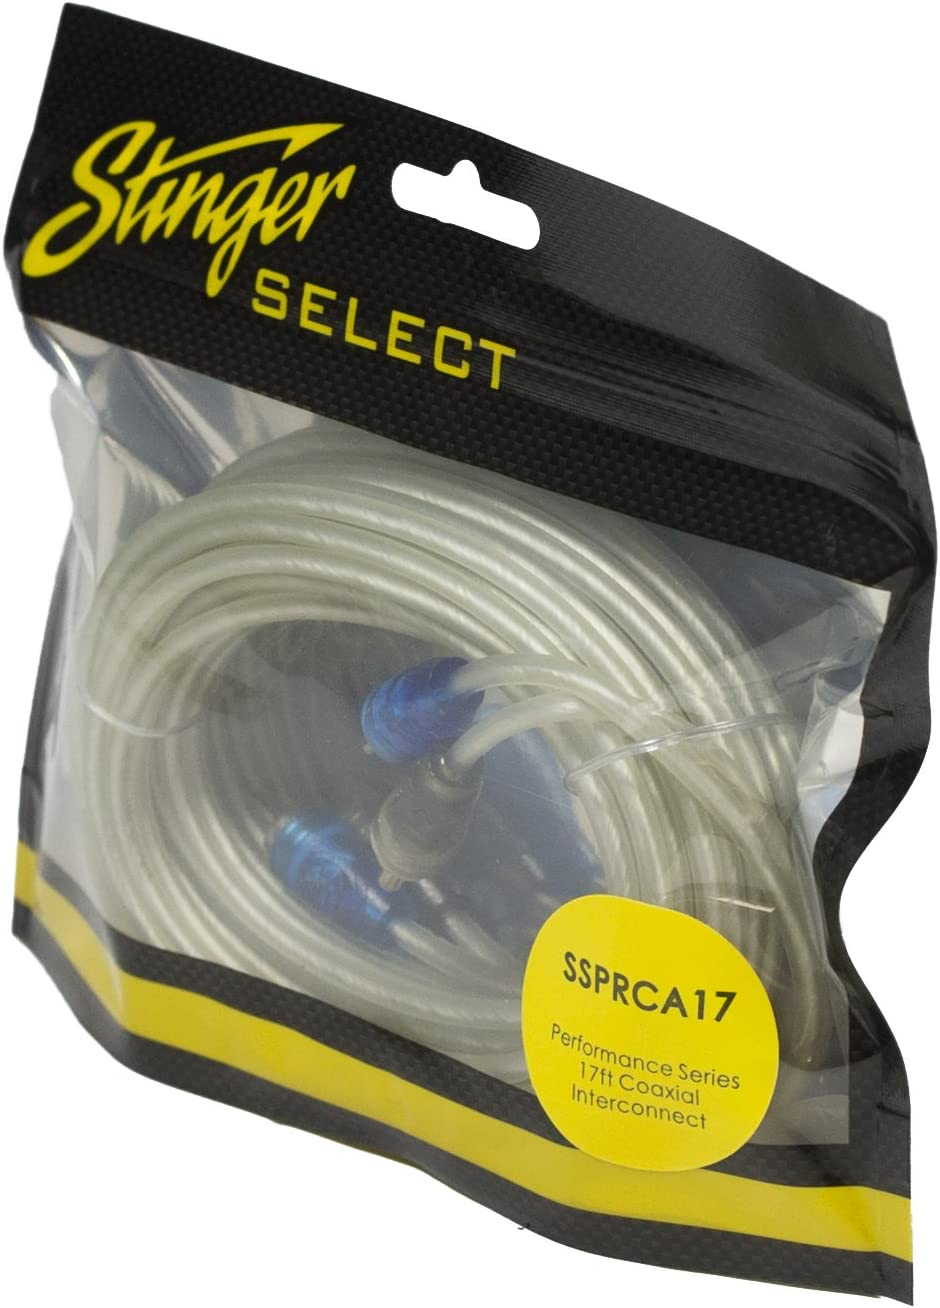 Stinger Select SSRCB12 Audio RCA Interconnect Cable 12 ft 2 Channel Competition